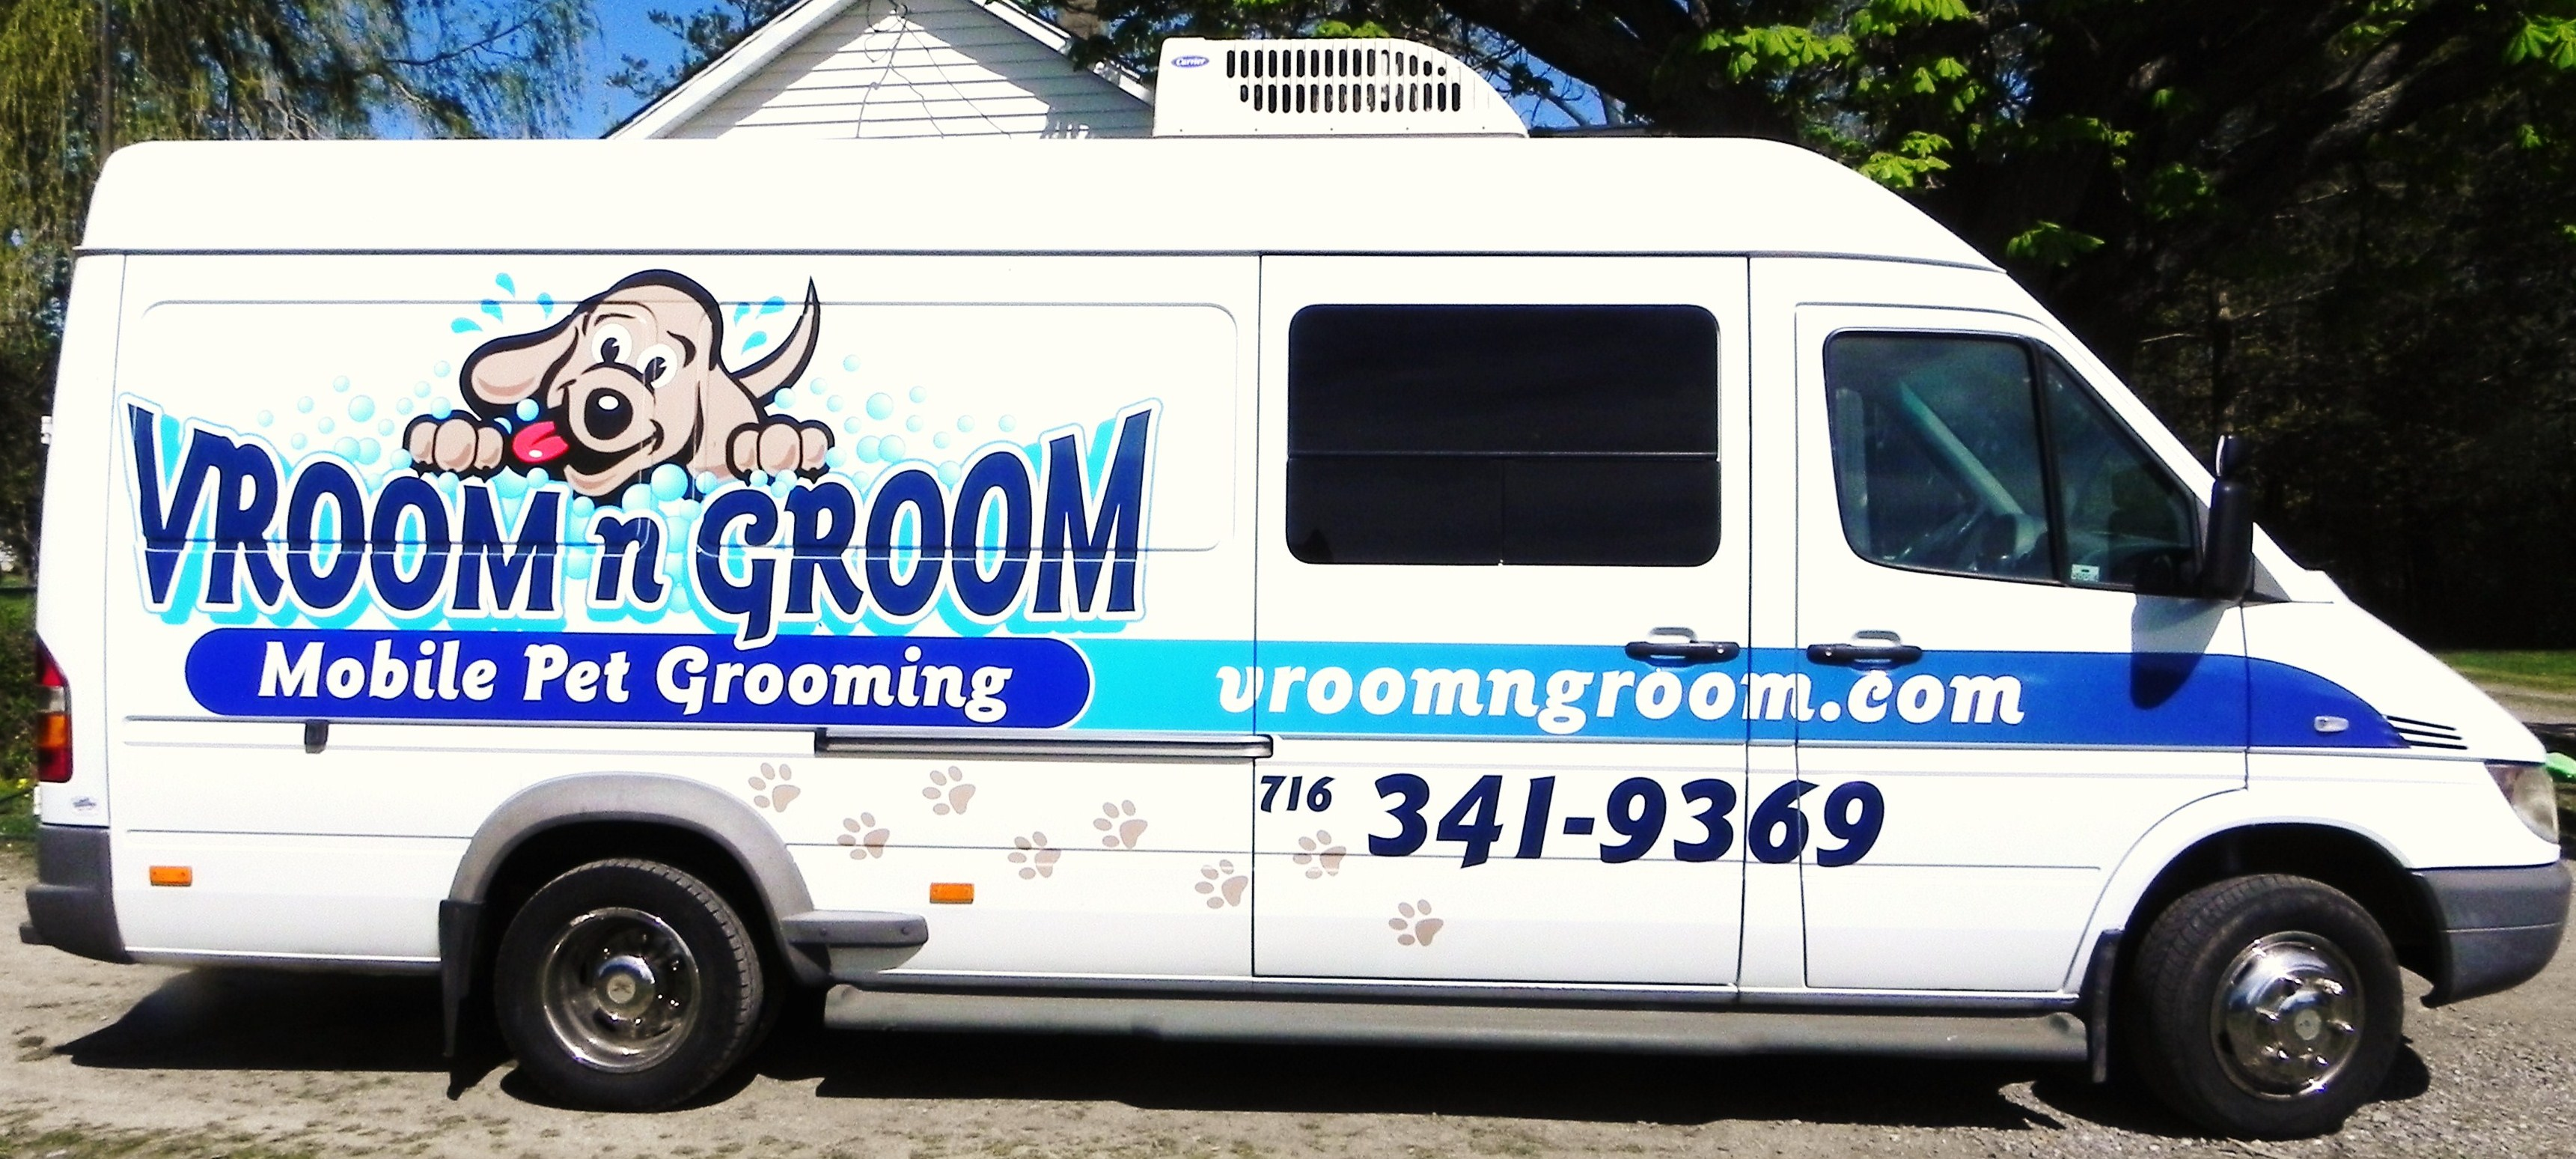 What is mobile pet grooming mobile dog grooming van it is professional grooming self contained solutioingenieria Image collections